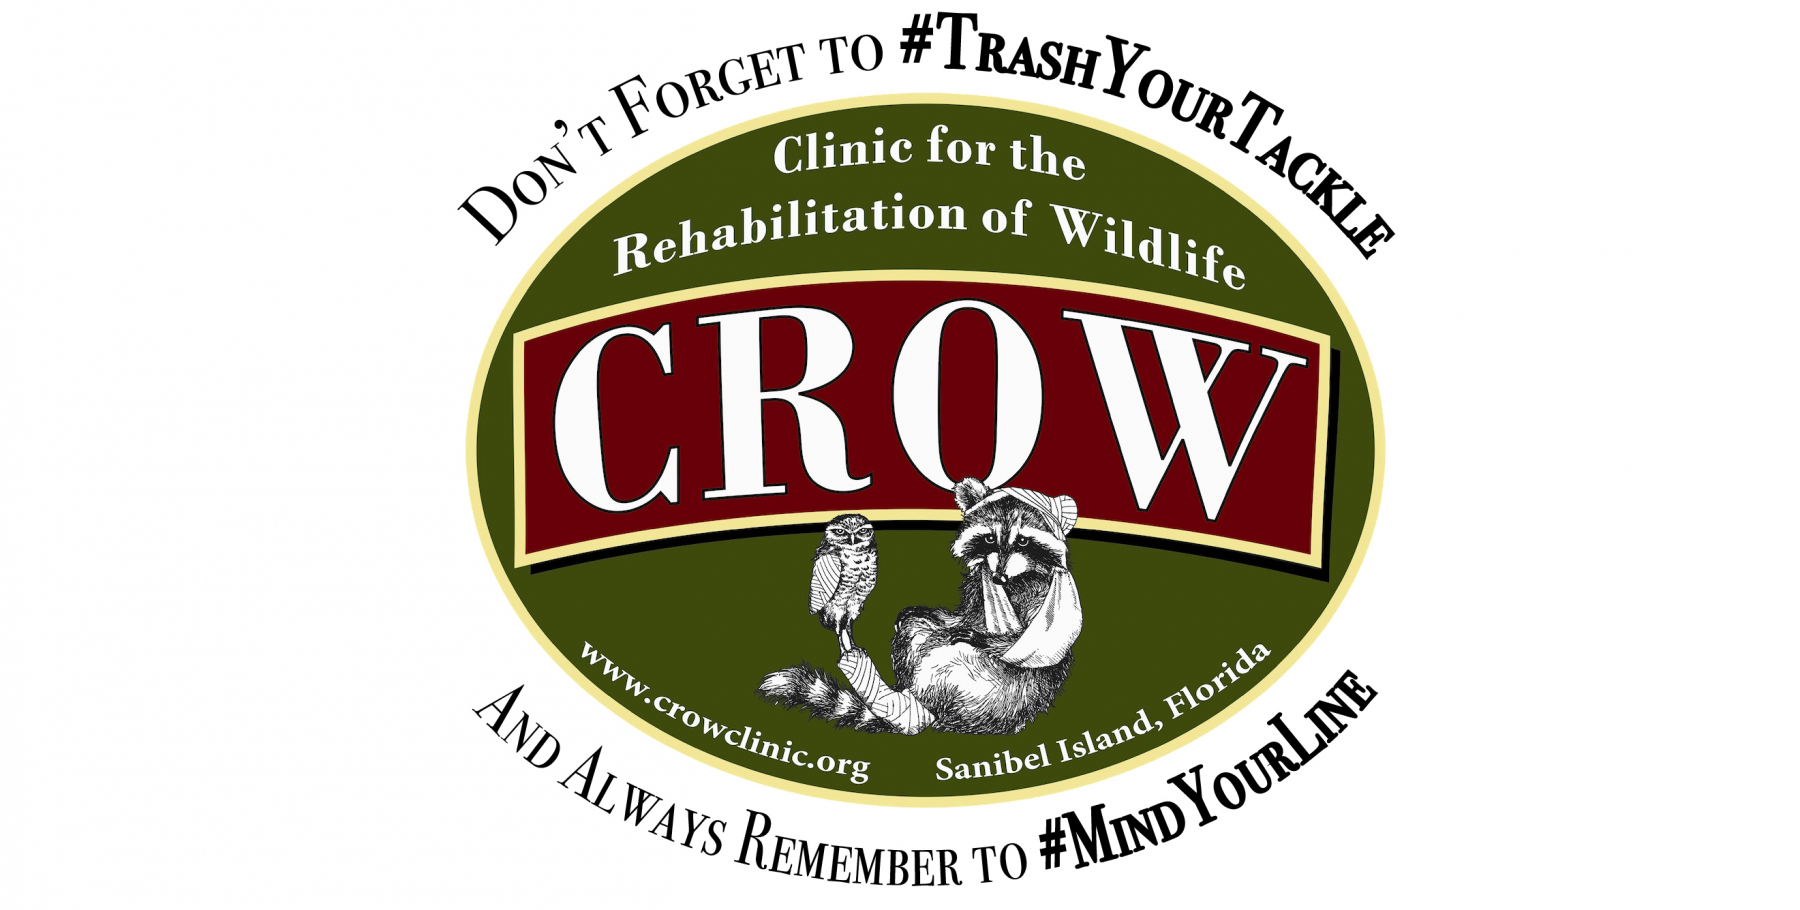 CROW-TrashYourTackle-01